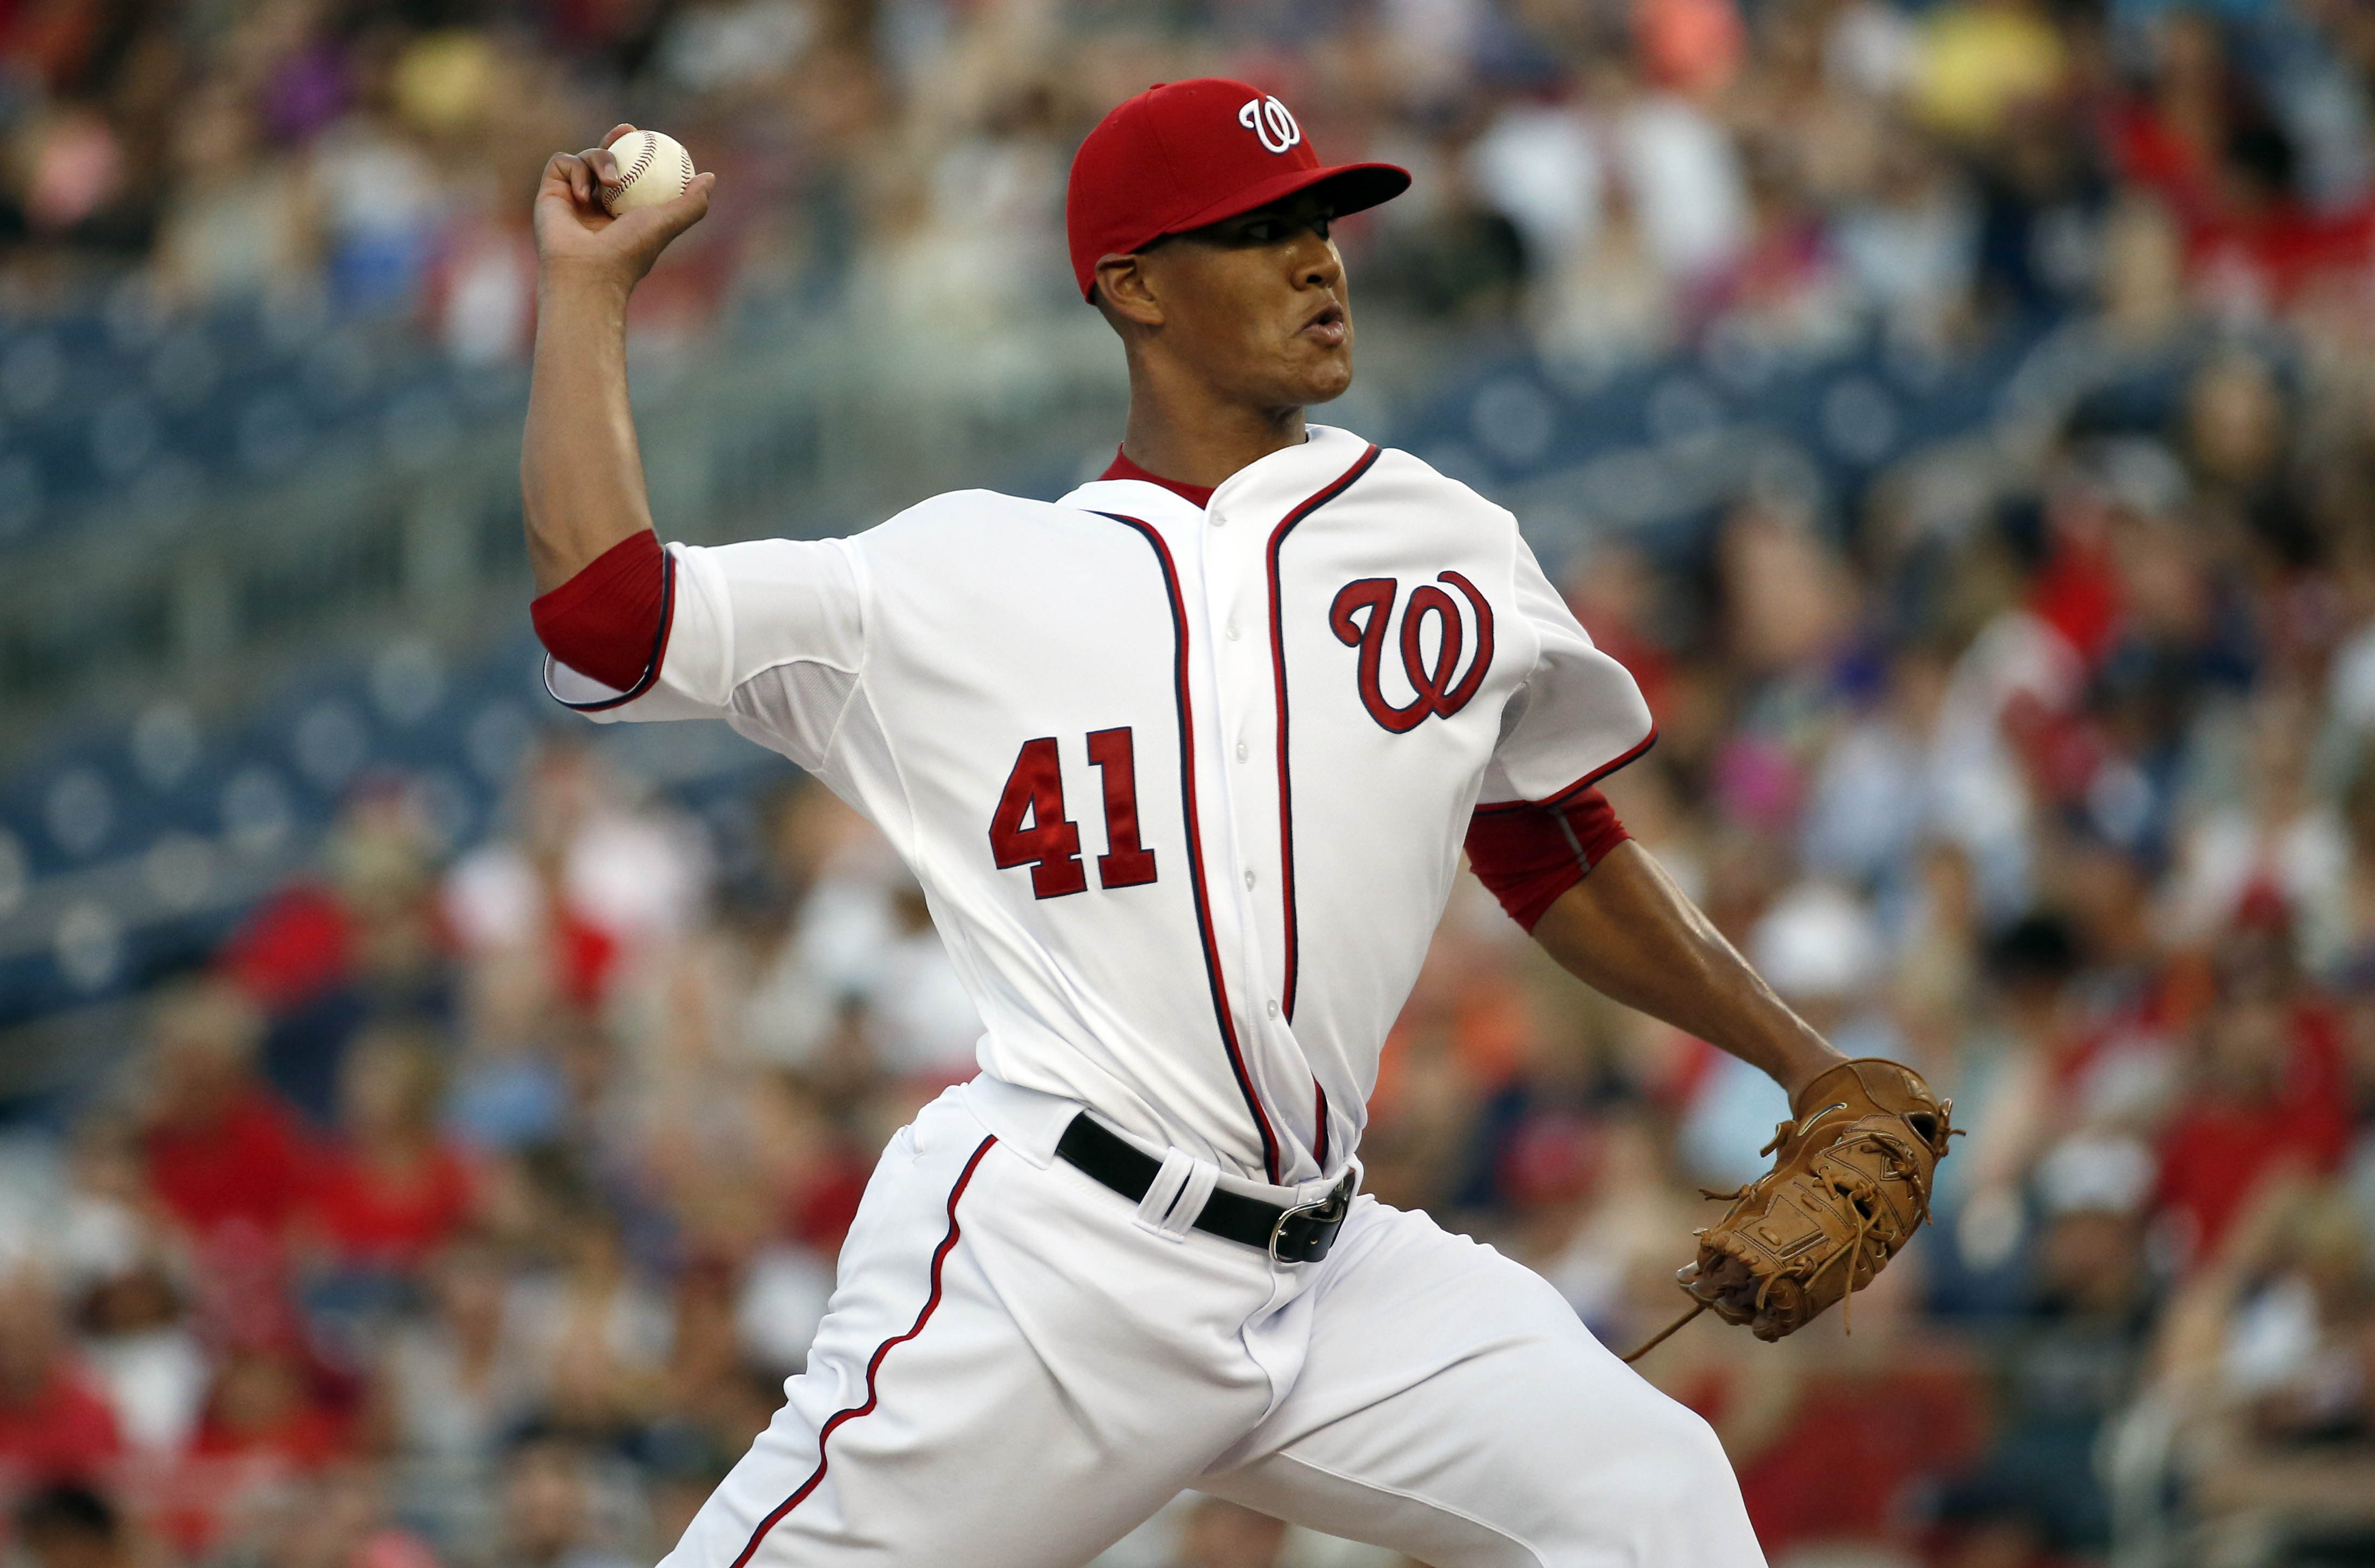 Washington Nationals starting pitcher Joe Ross throws during the third inning of a baseball game against the New York Mets at Nationals Park, Tuesday, July 21, 2015, in Washington. (AP Photo/Alex Brandon)